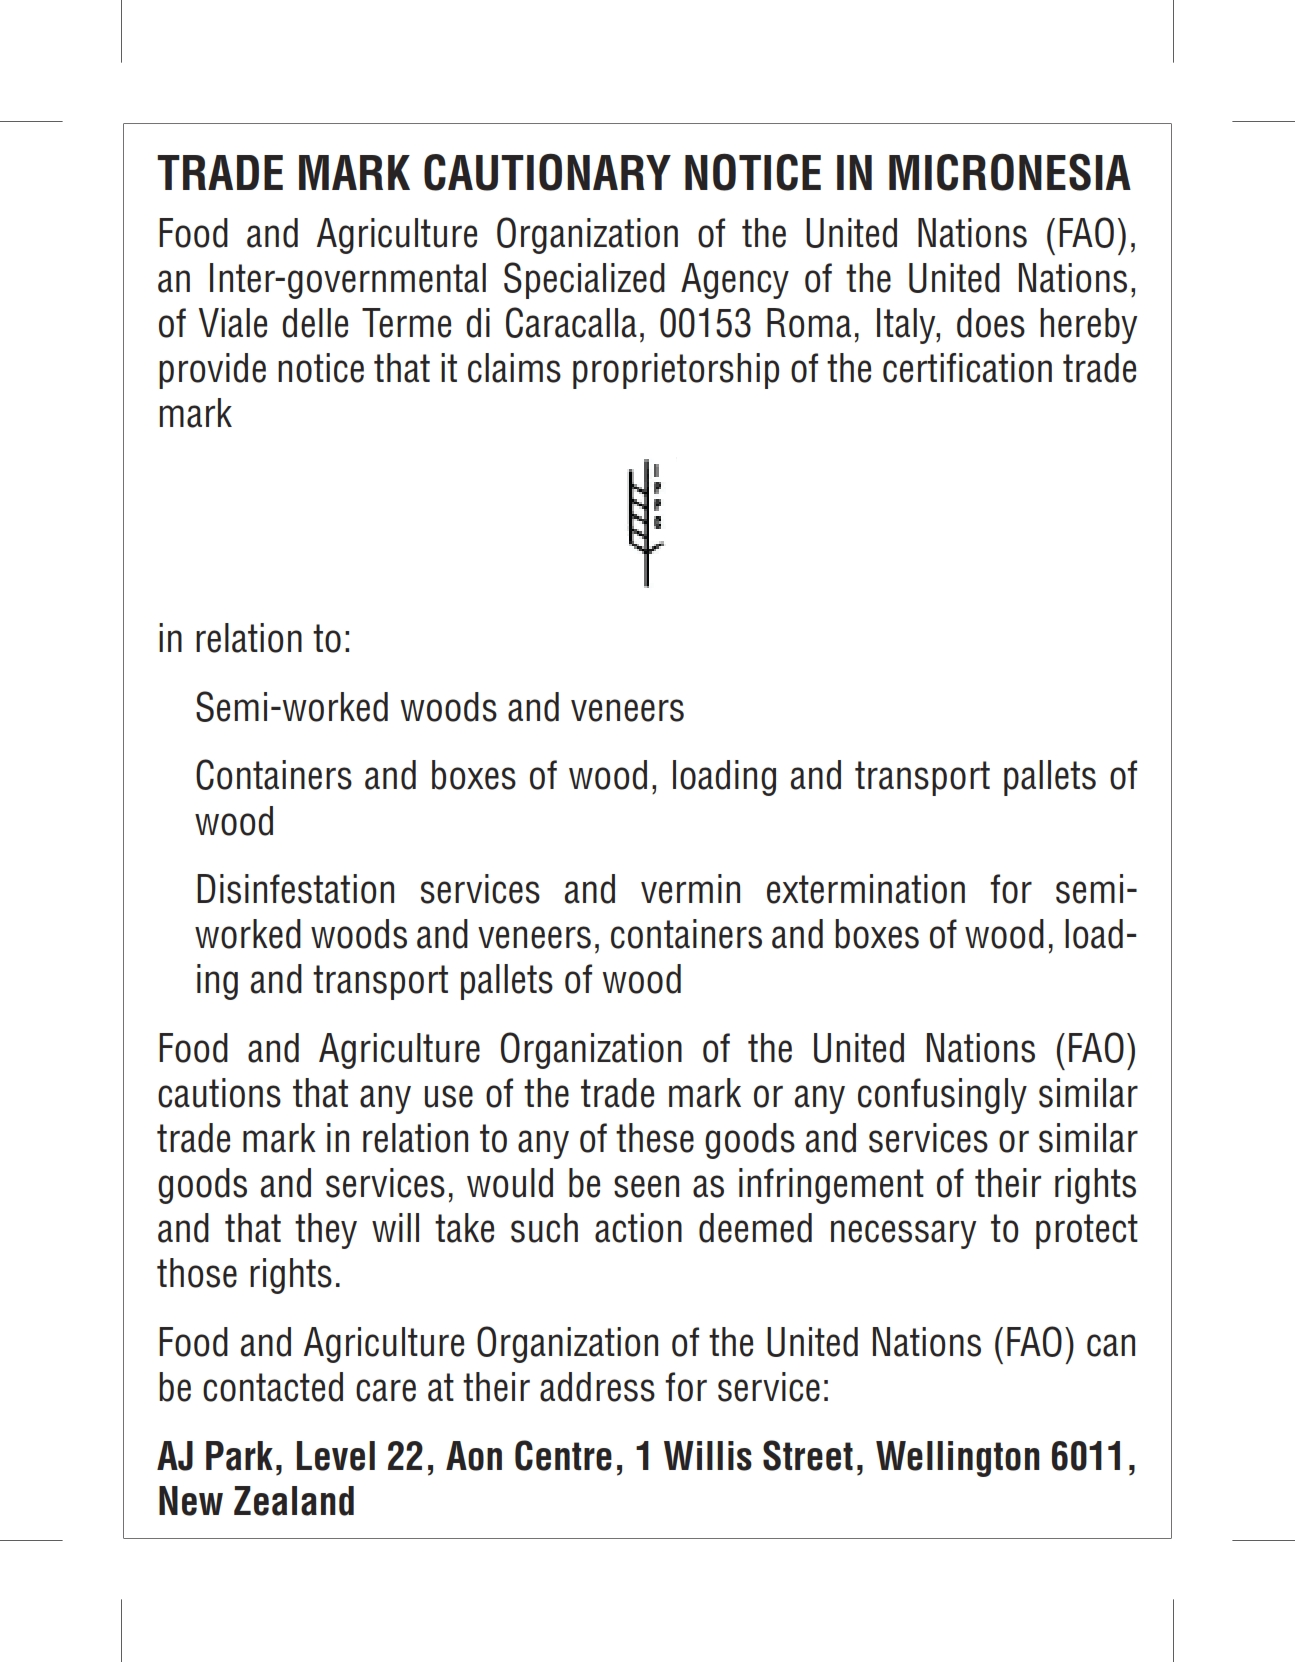 TRADE MARK CAUTIONARY NOTICE IN MICRONESIA Food and Agriculture Organization of the United Nations FAO